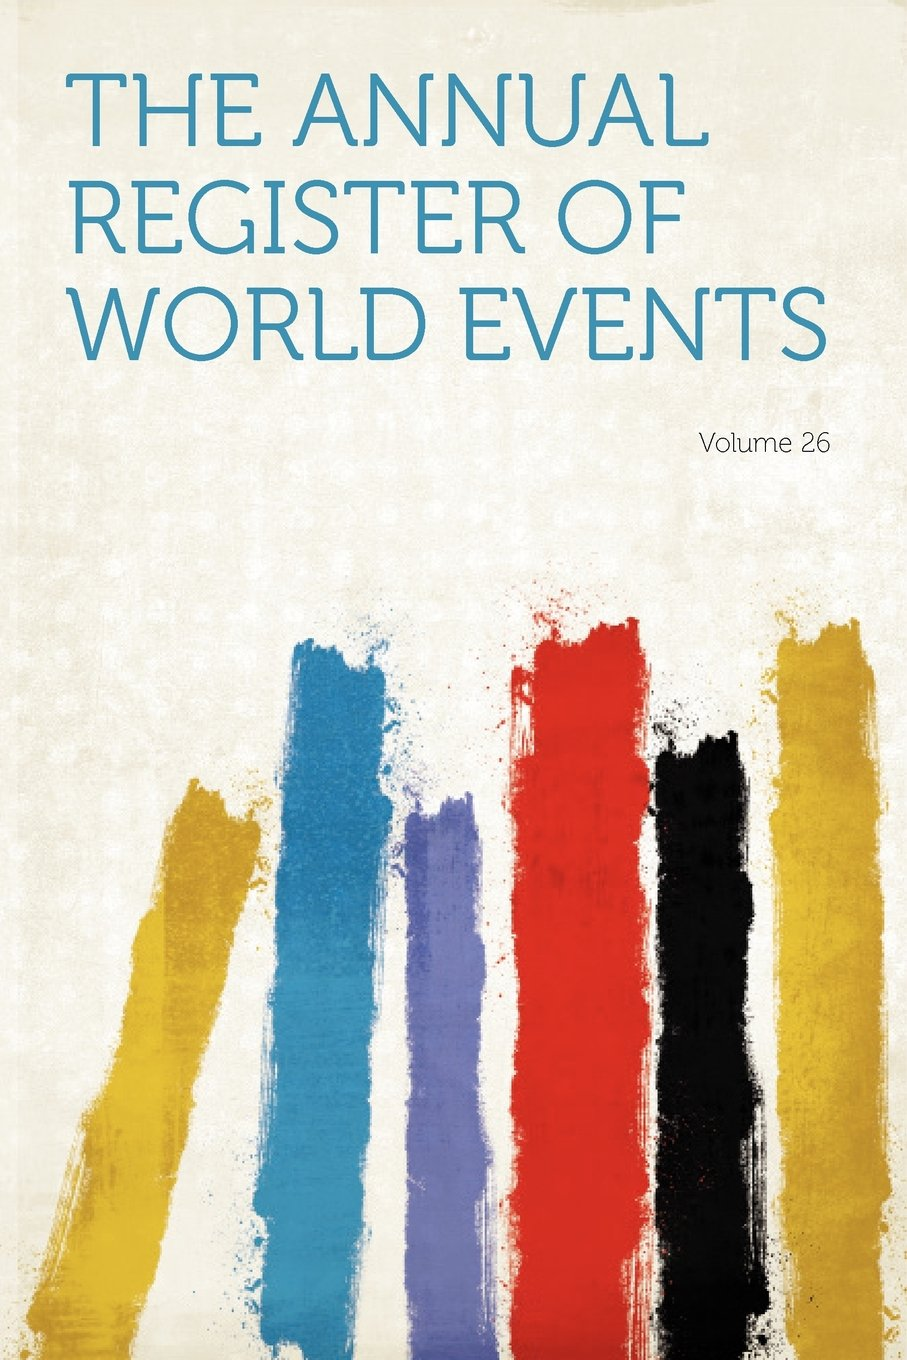 The Annual Register of World Events Volume 26 pdf